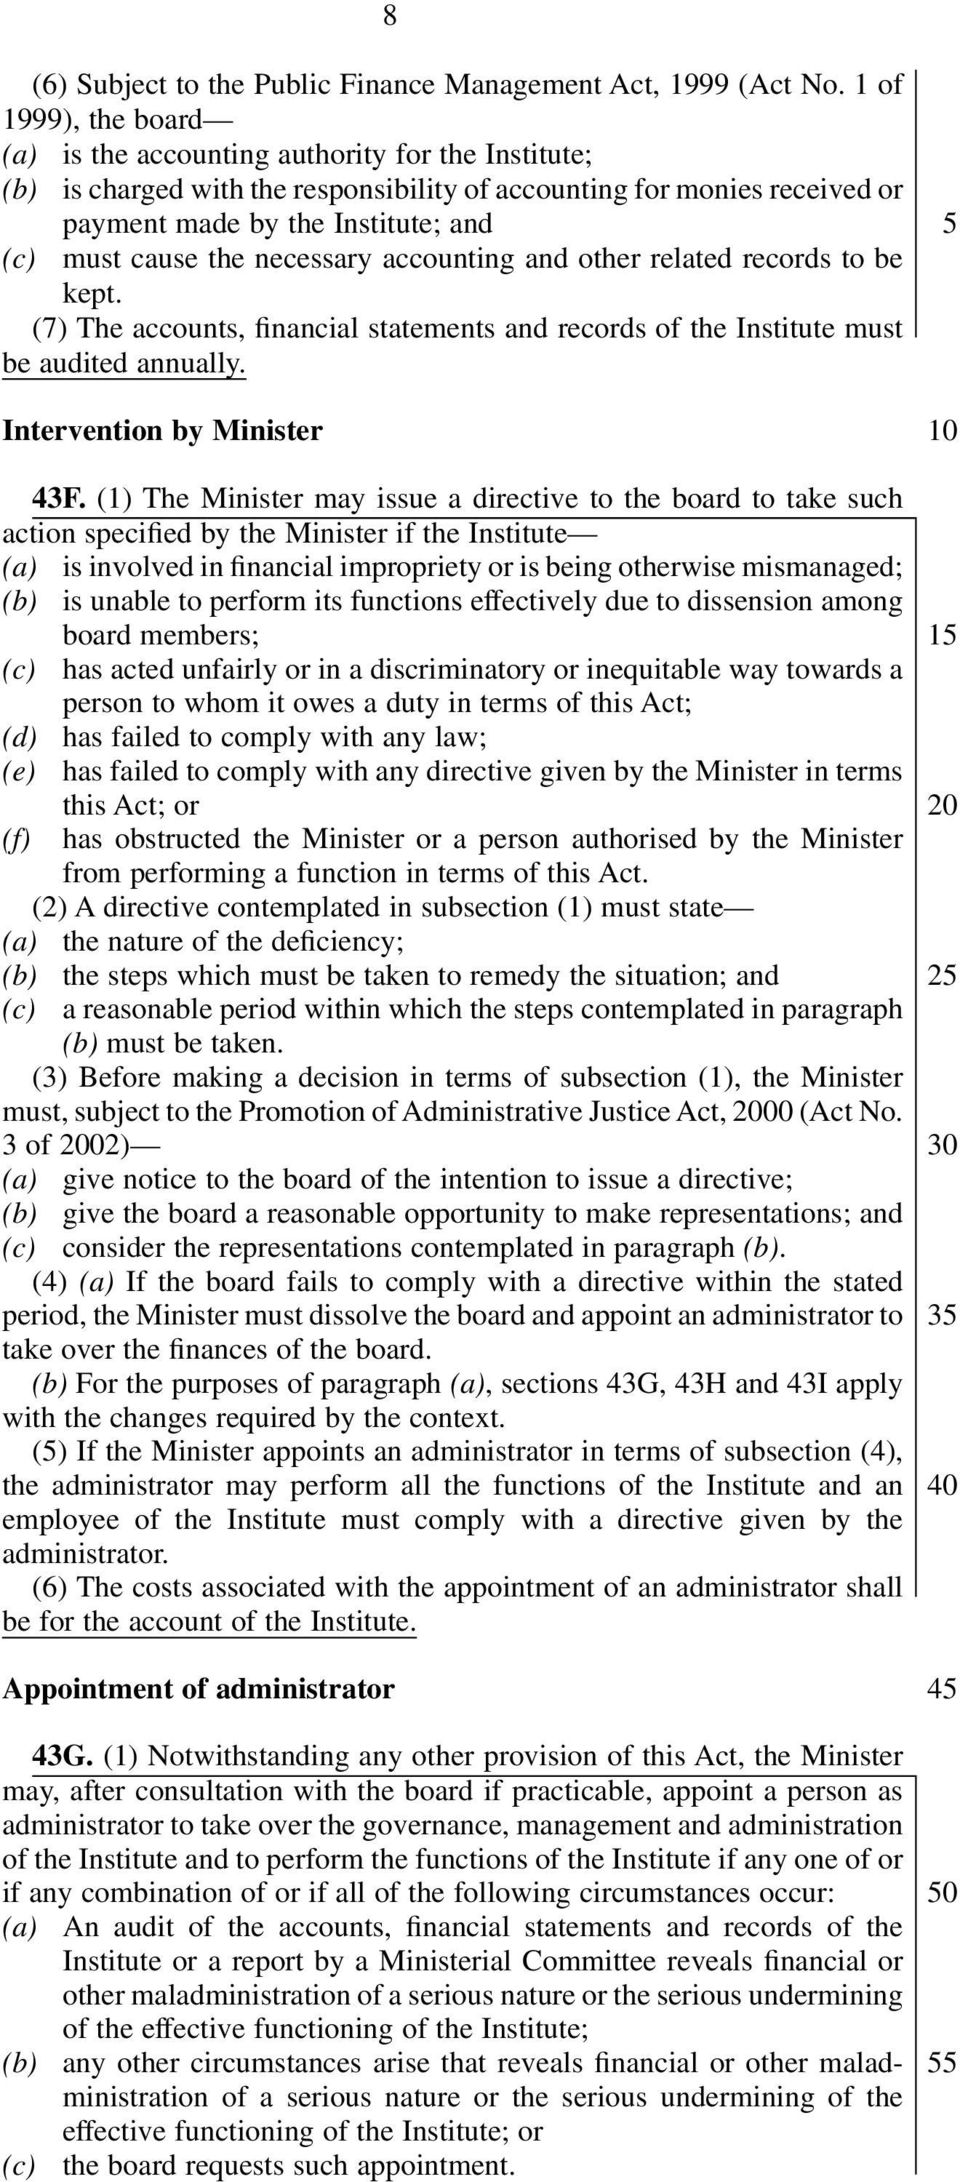 the necessary accounting and other related records to be kept. (7) The accounts, financial statements and records of the Institute must be audited annually. Intervention by Minister 43F.